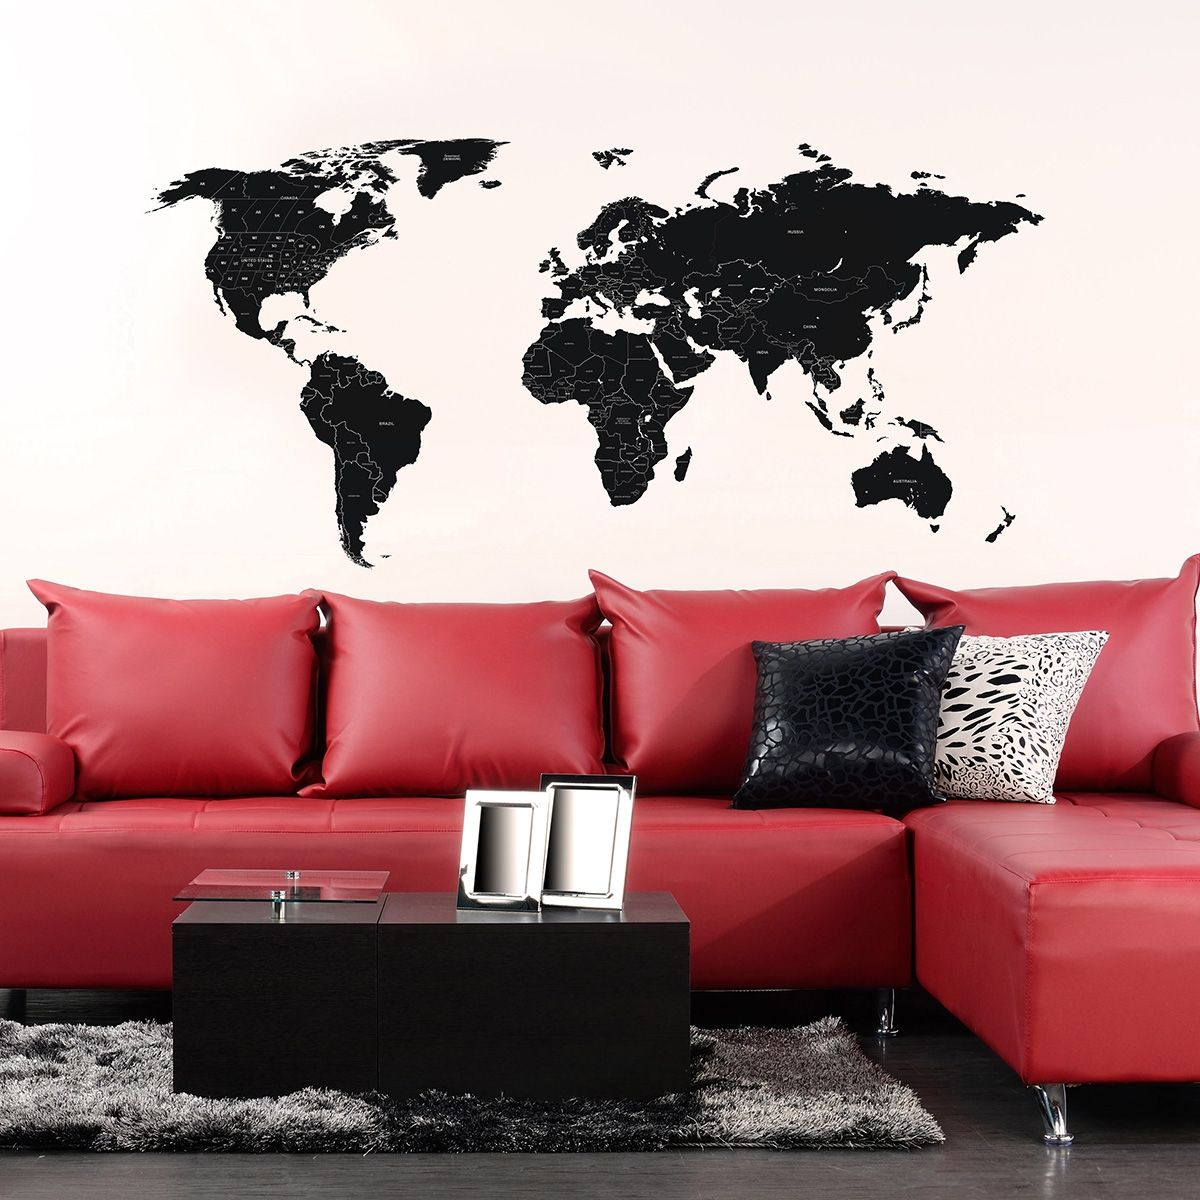 Large black labelled world map wall sticker pinterest large large black labelled world map wall sticker gumiabroncs Gallery